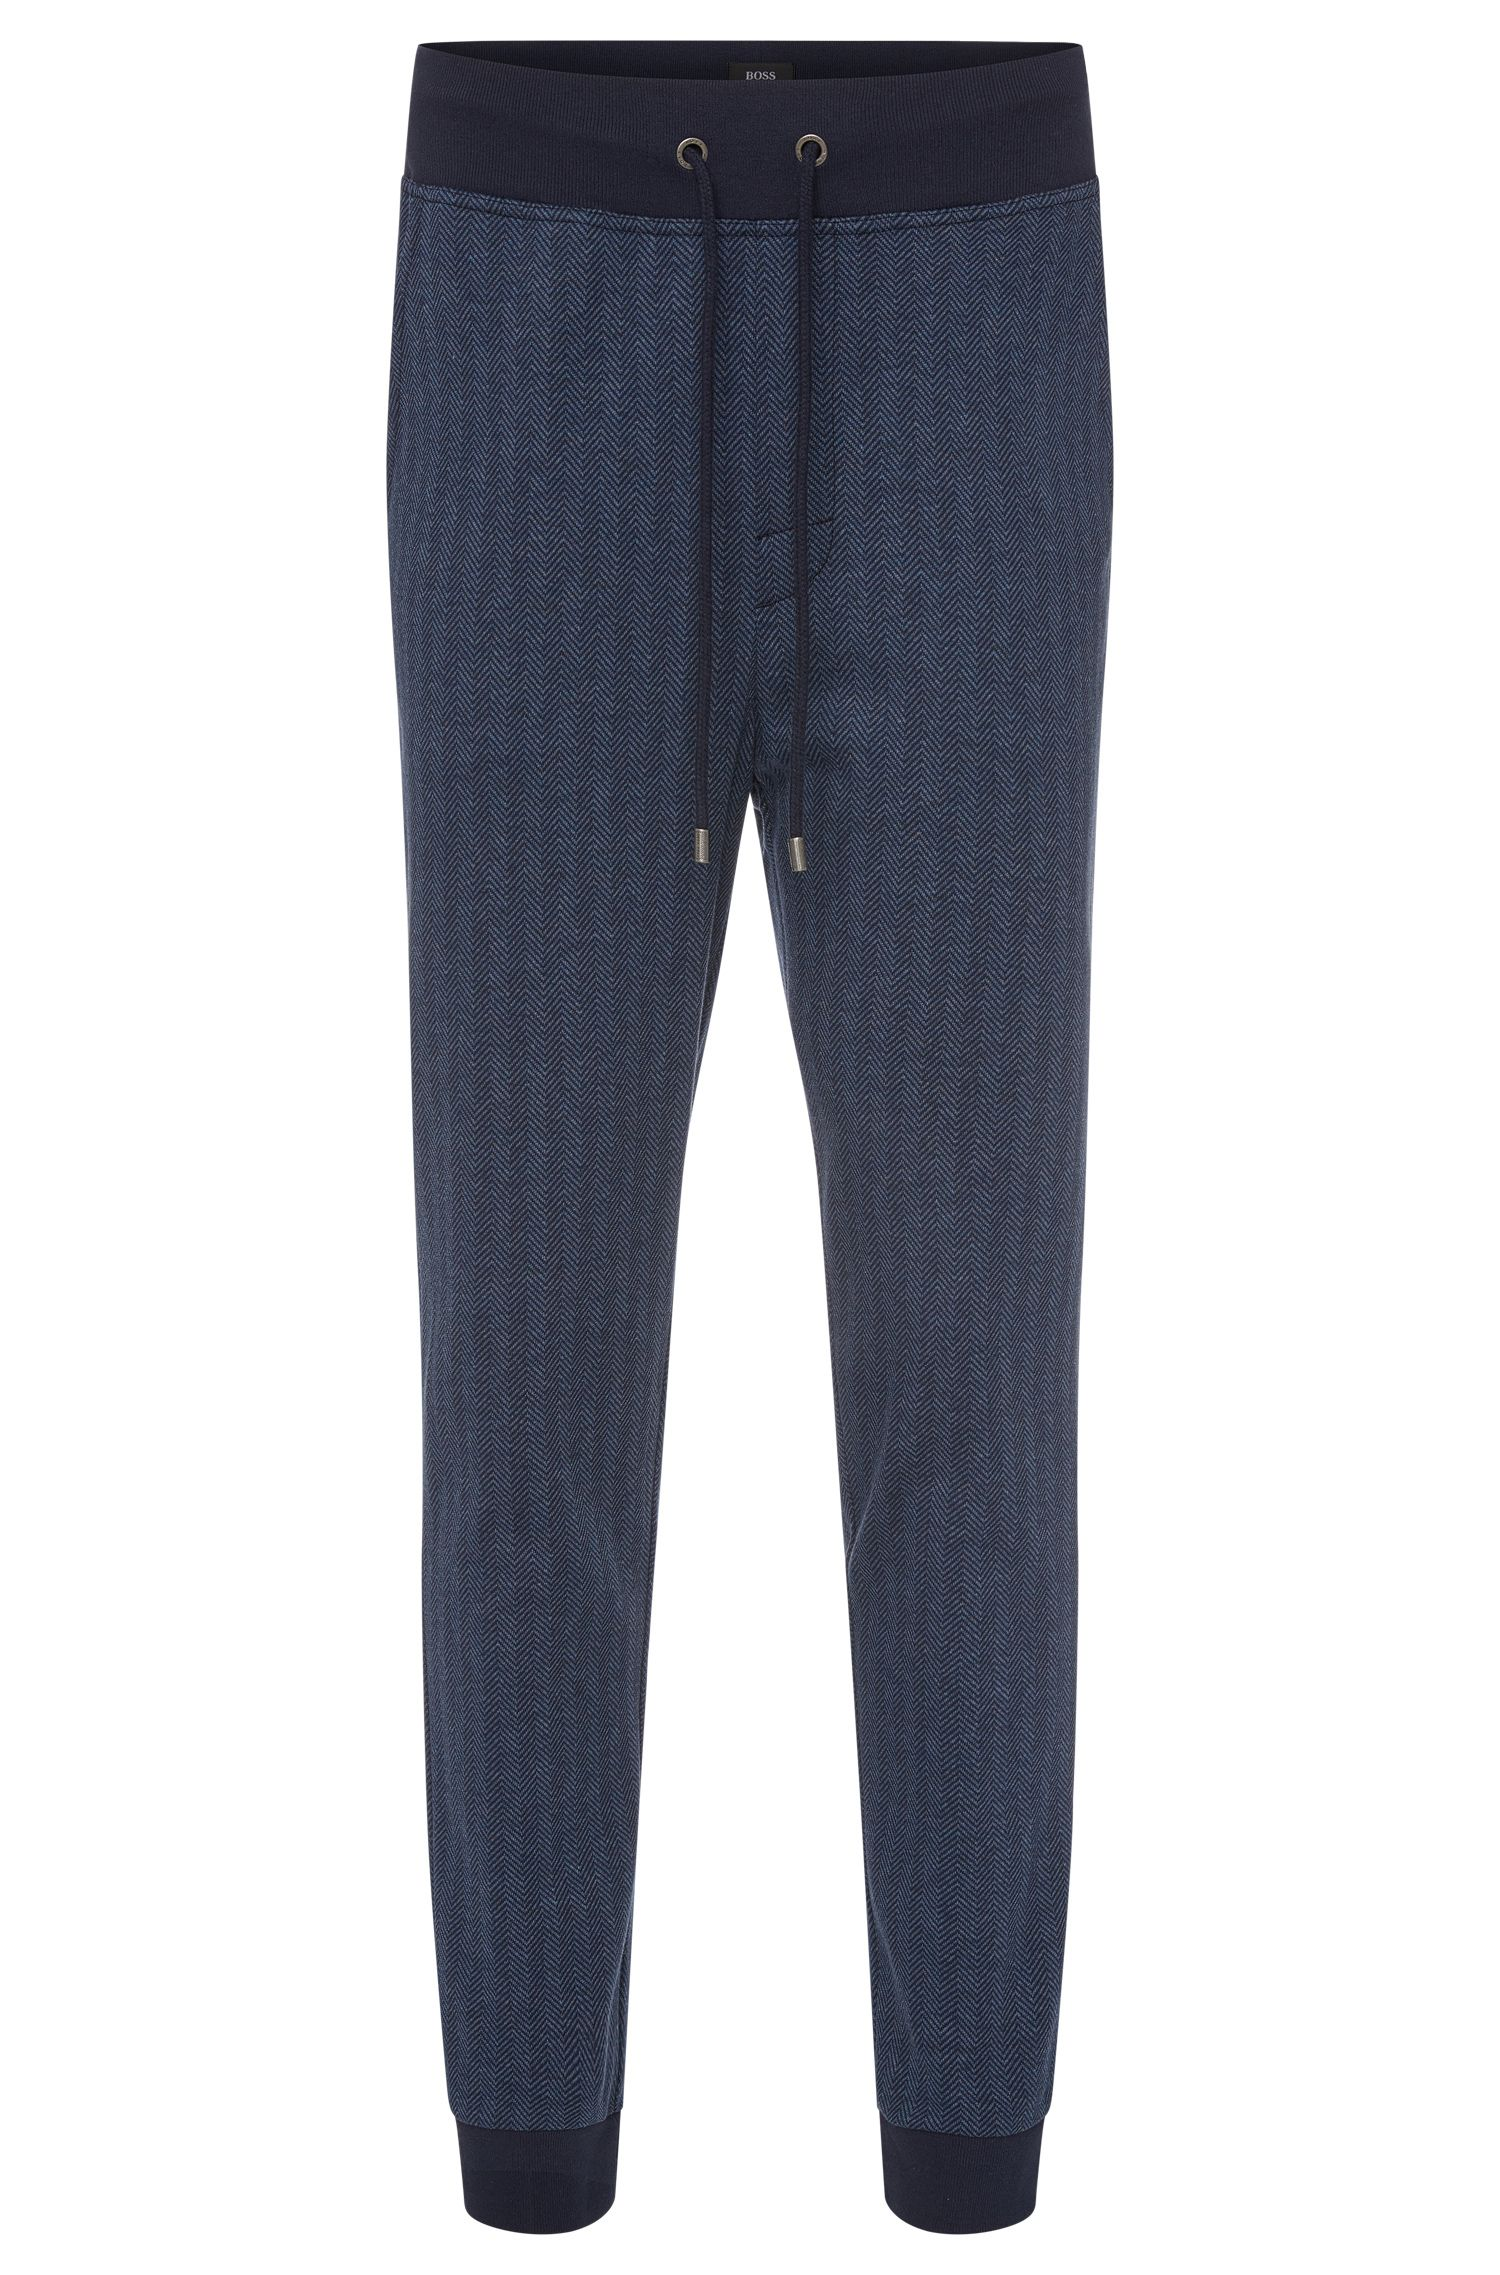 Cotton Jersey Lounge Pant | Long Pant Cuffs